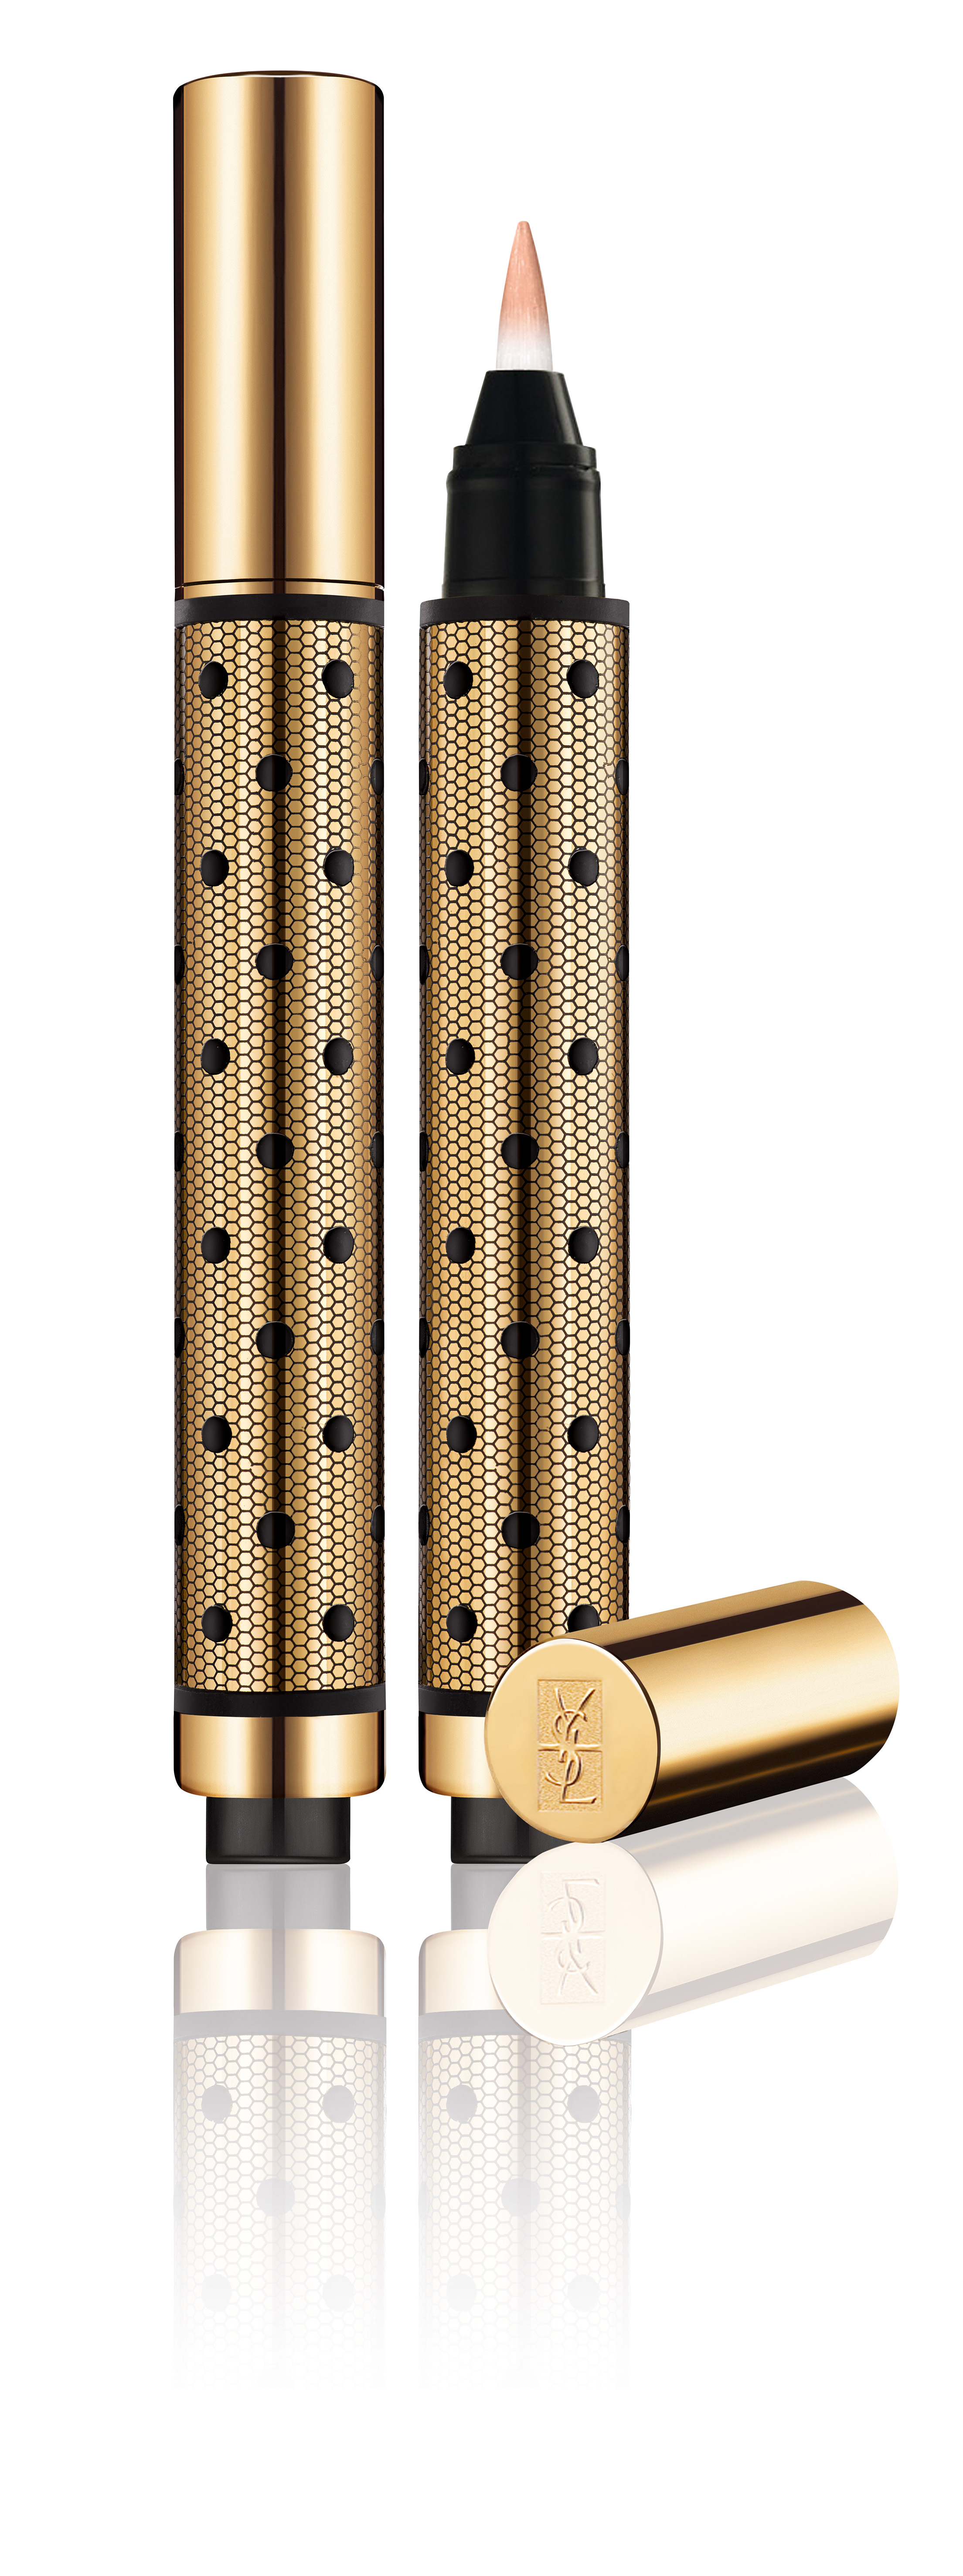 Ysl TE Collector Rock Resille Edition